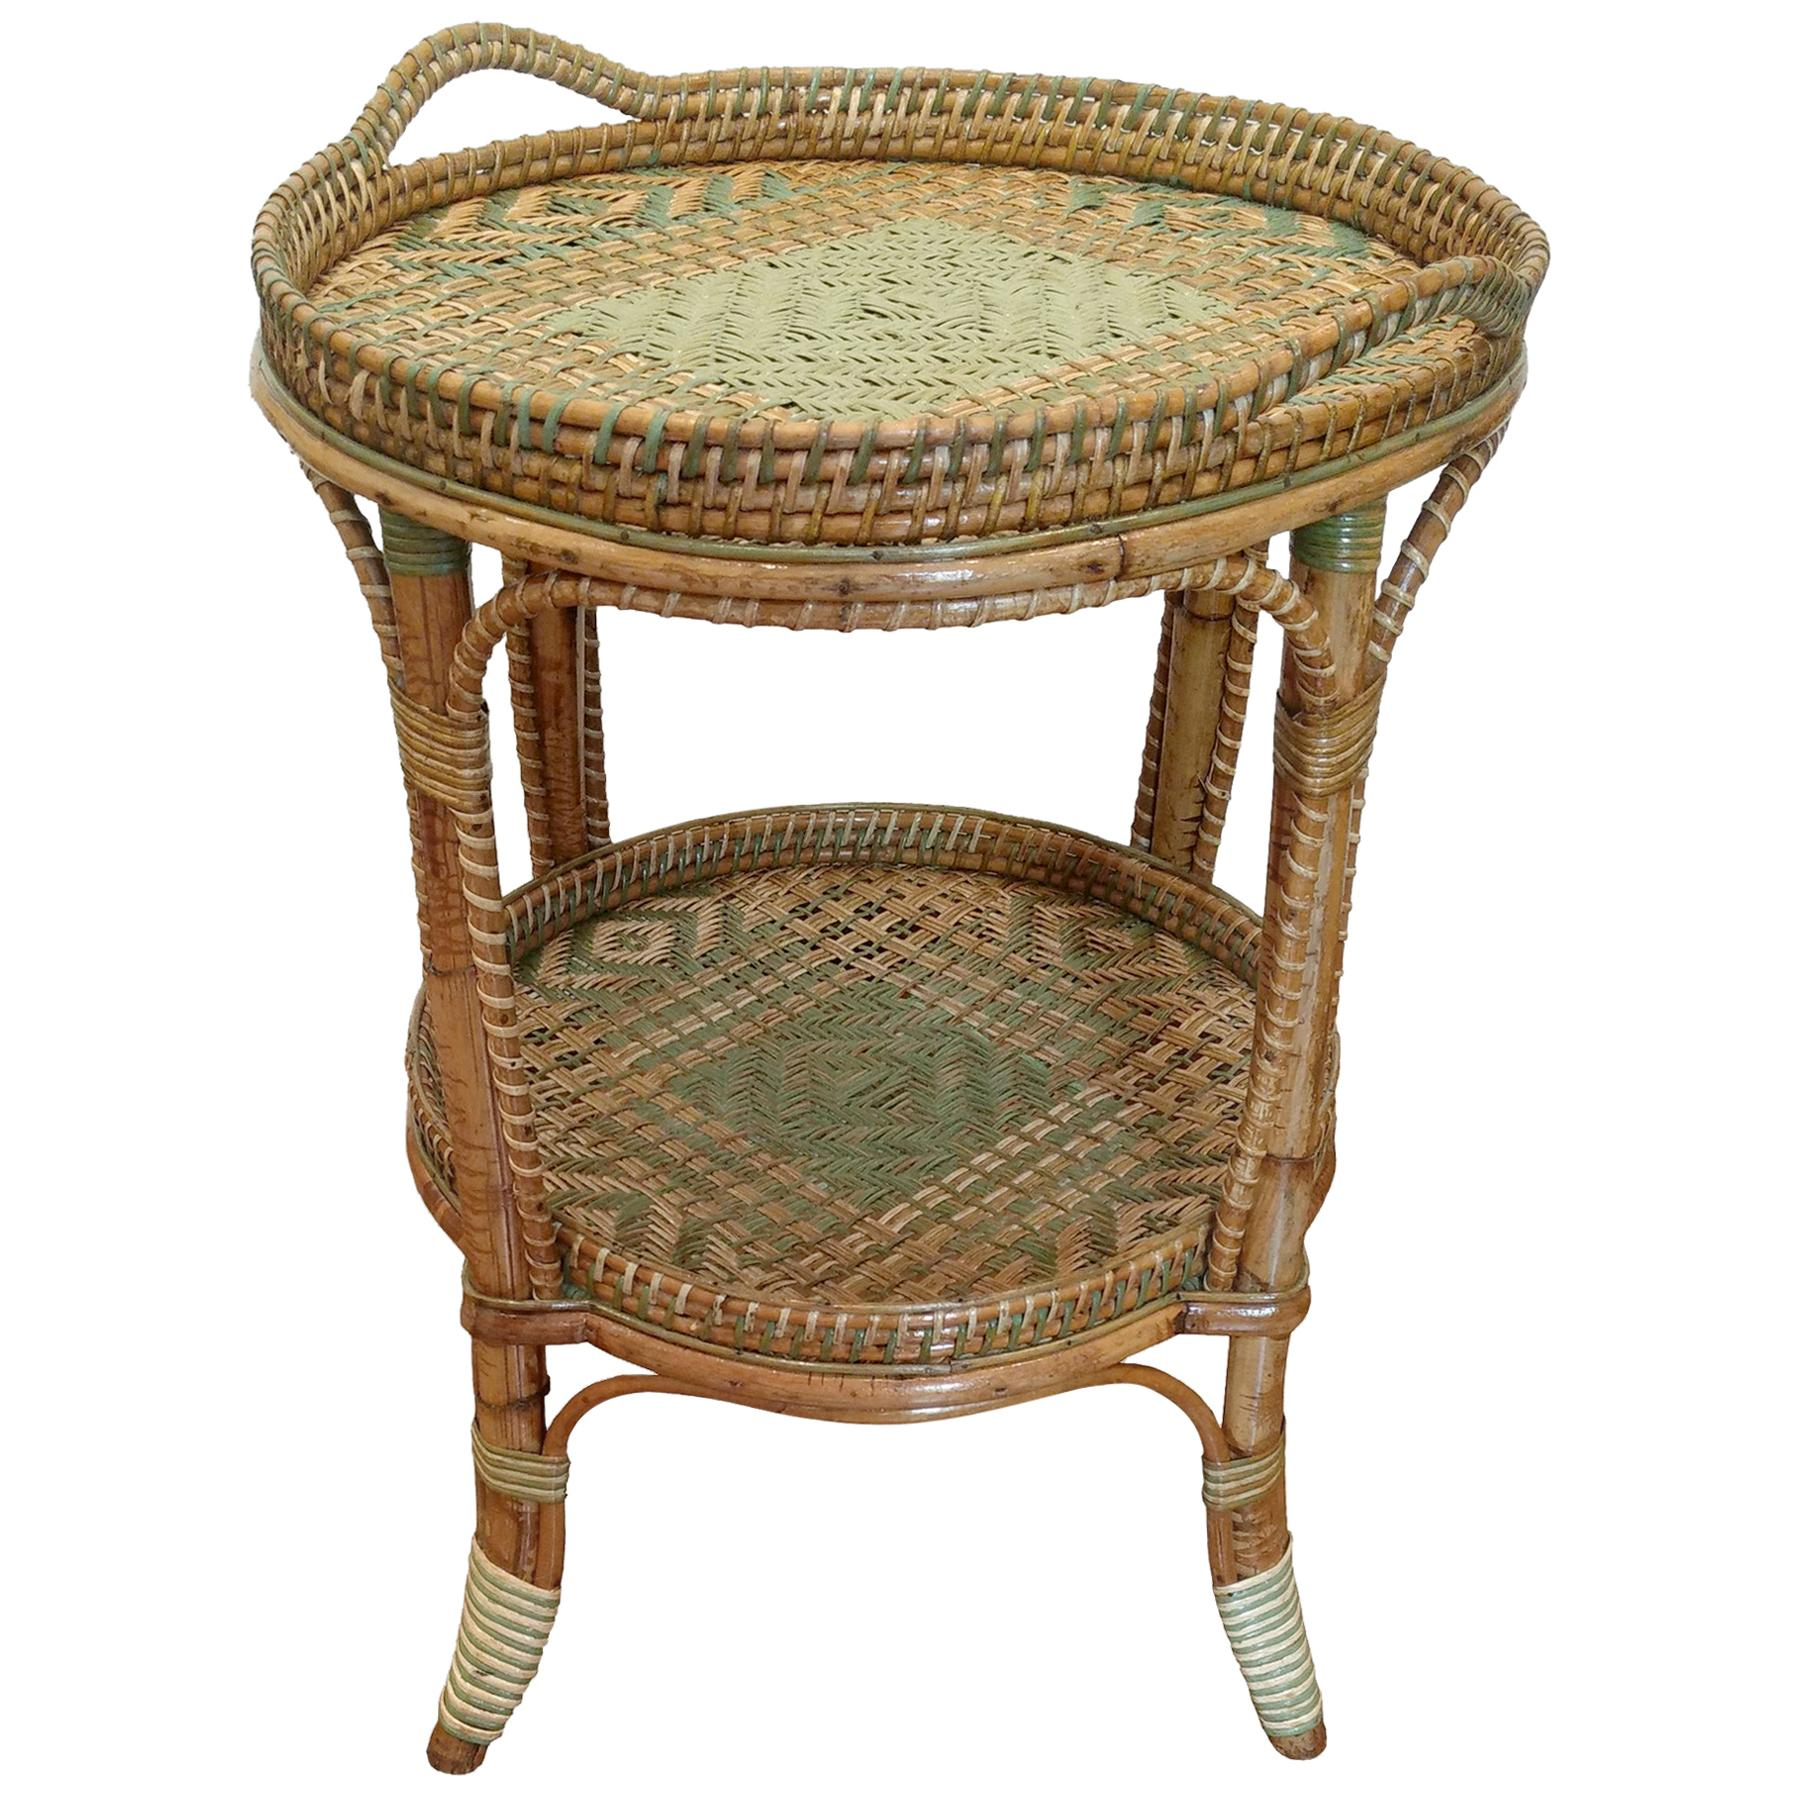 Serving Table in Woven and Lacquered Rattan, France, circa 1900